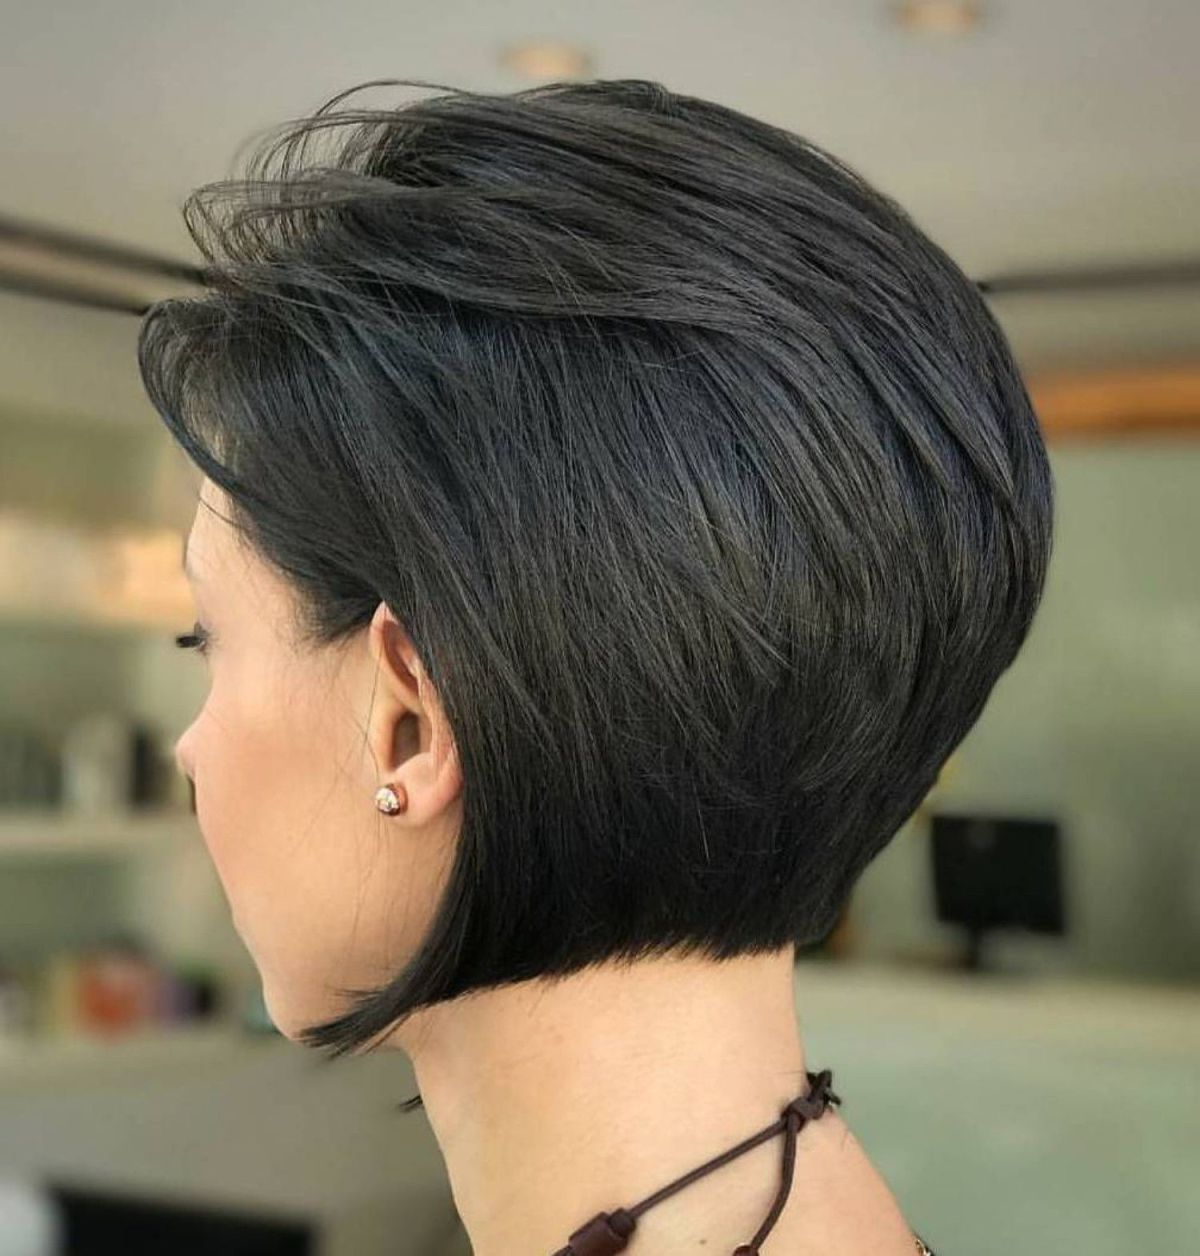 70 Cute And Easy To Style Short Layered Hairstyles Thick Hair Styles Short Hair With Layers Layered Hair